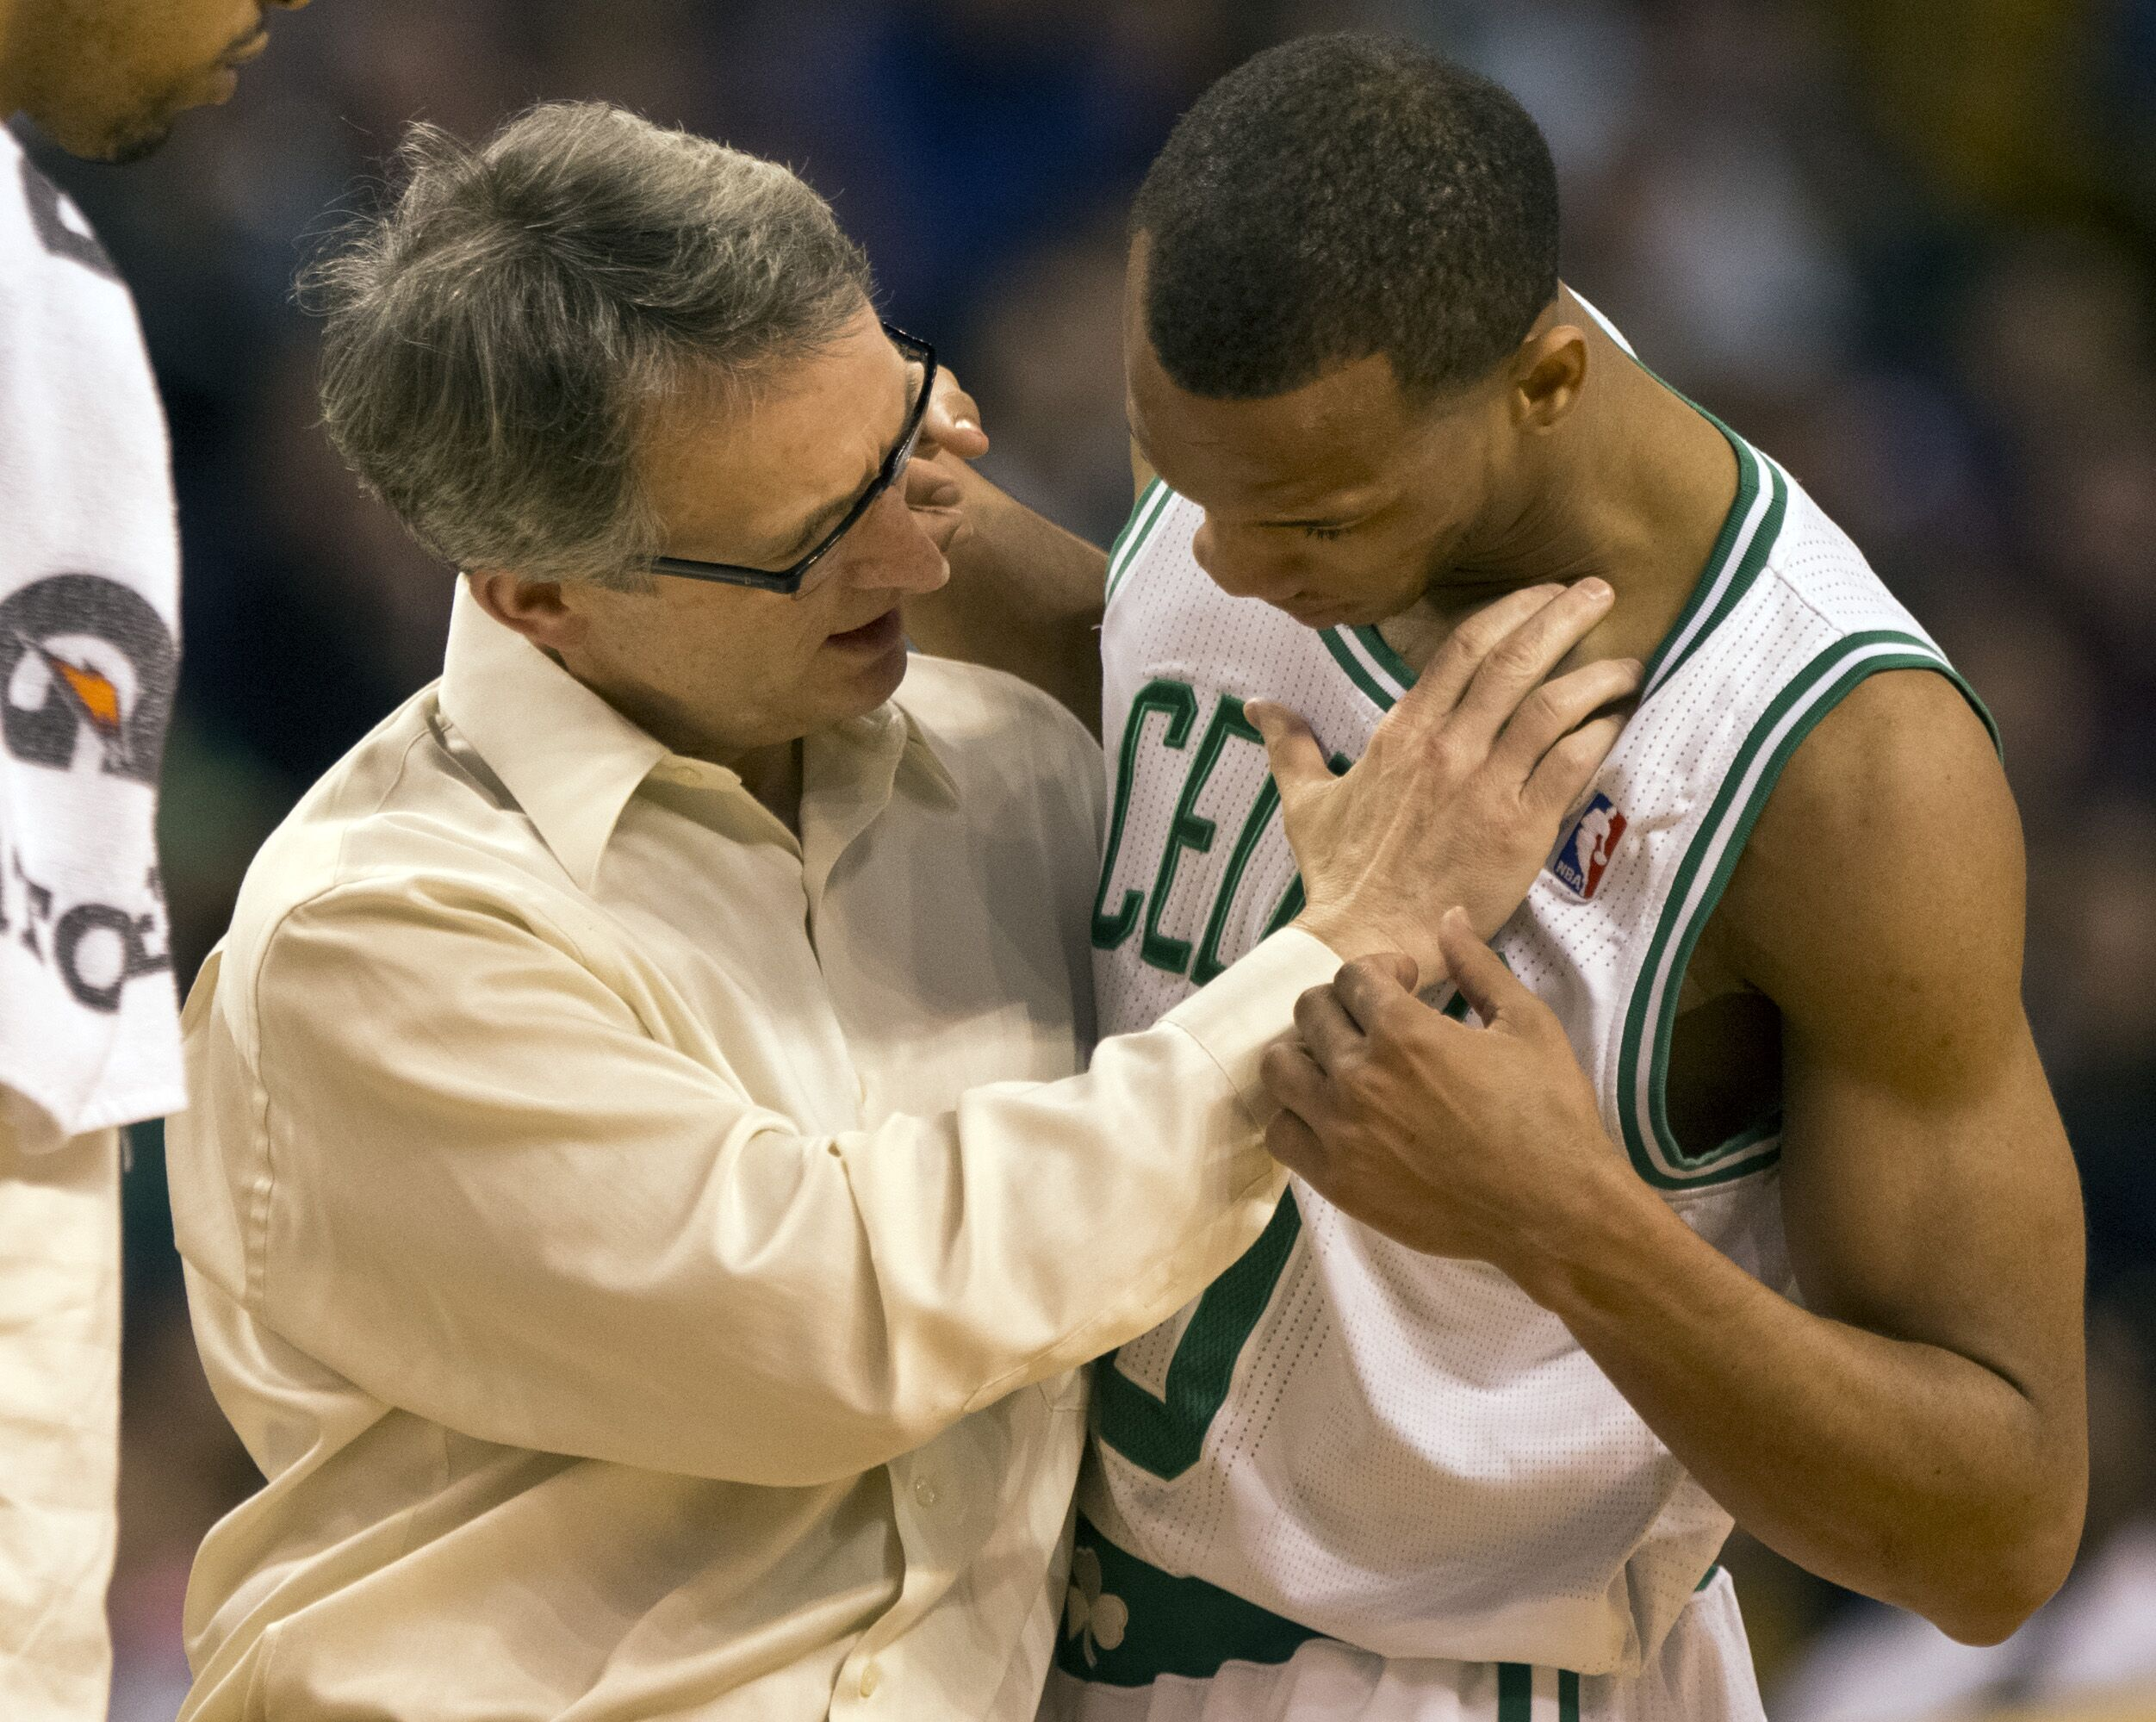 Boston Celtics Place Premium on Sports Science with Personnel Changes